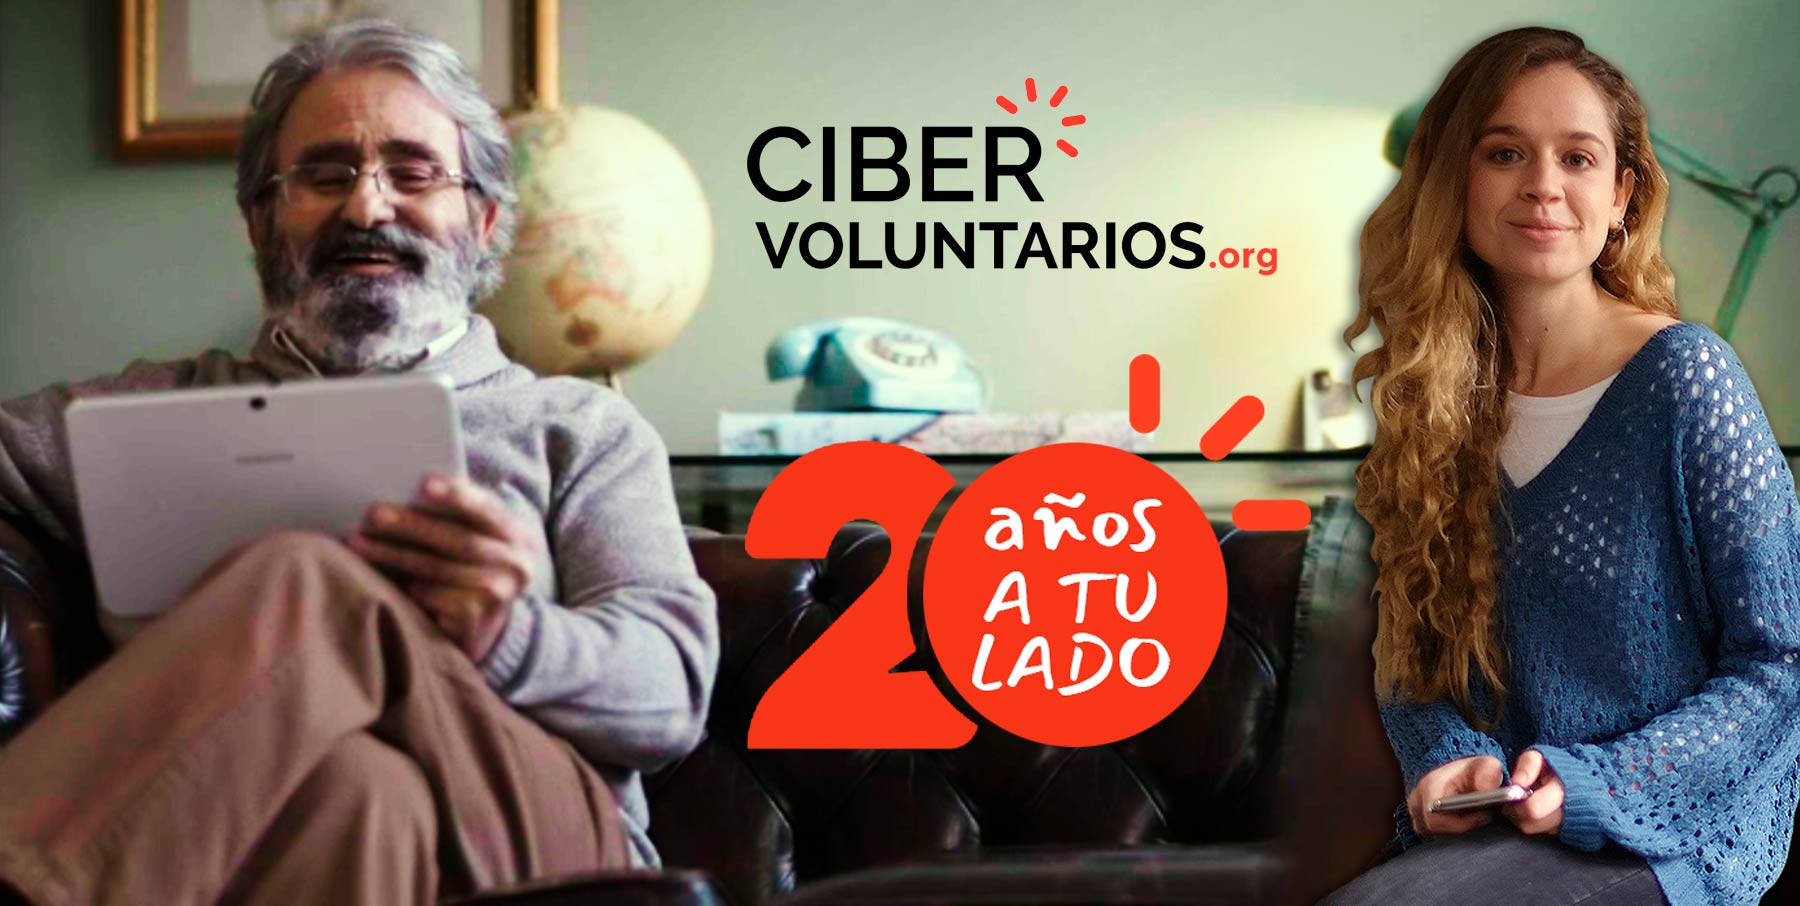 Cibervoluntarios turns 20 by your side